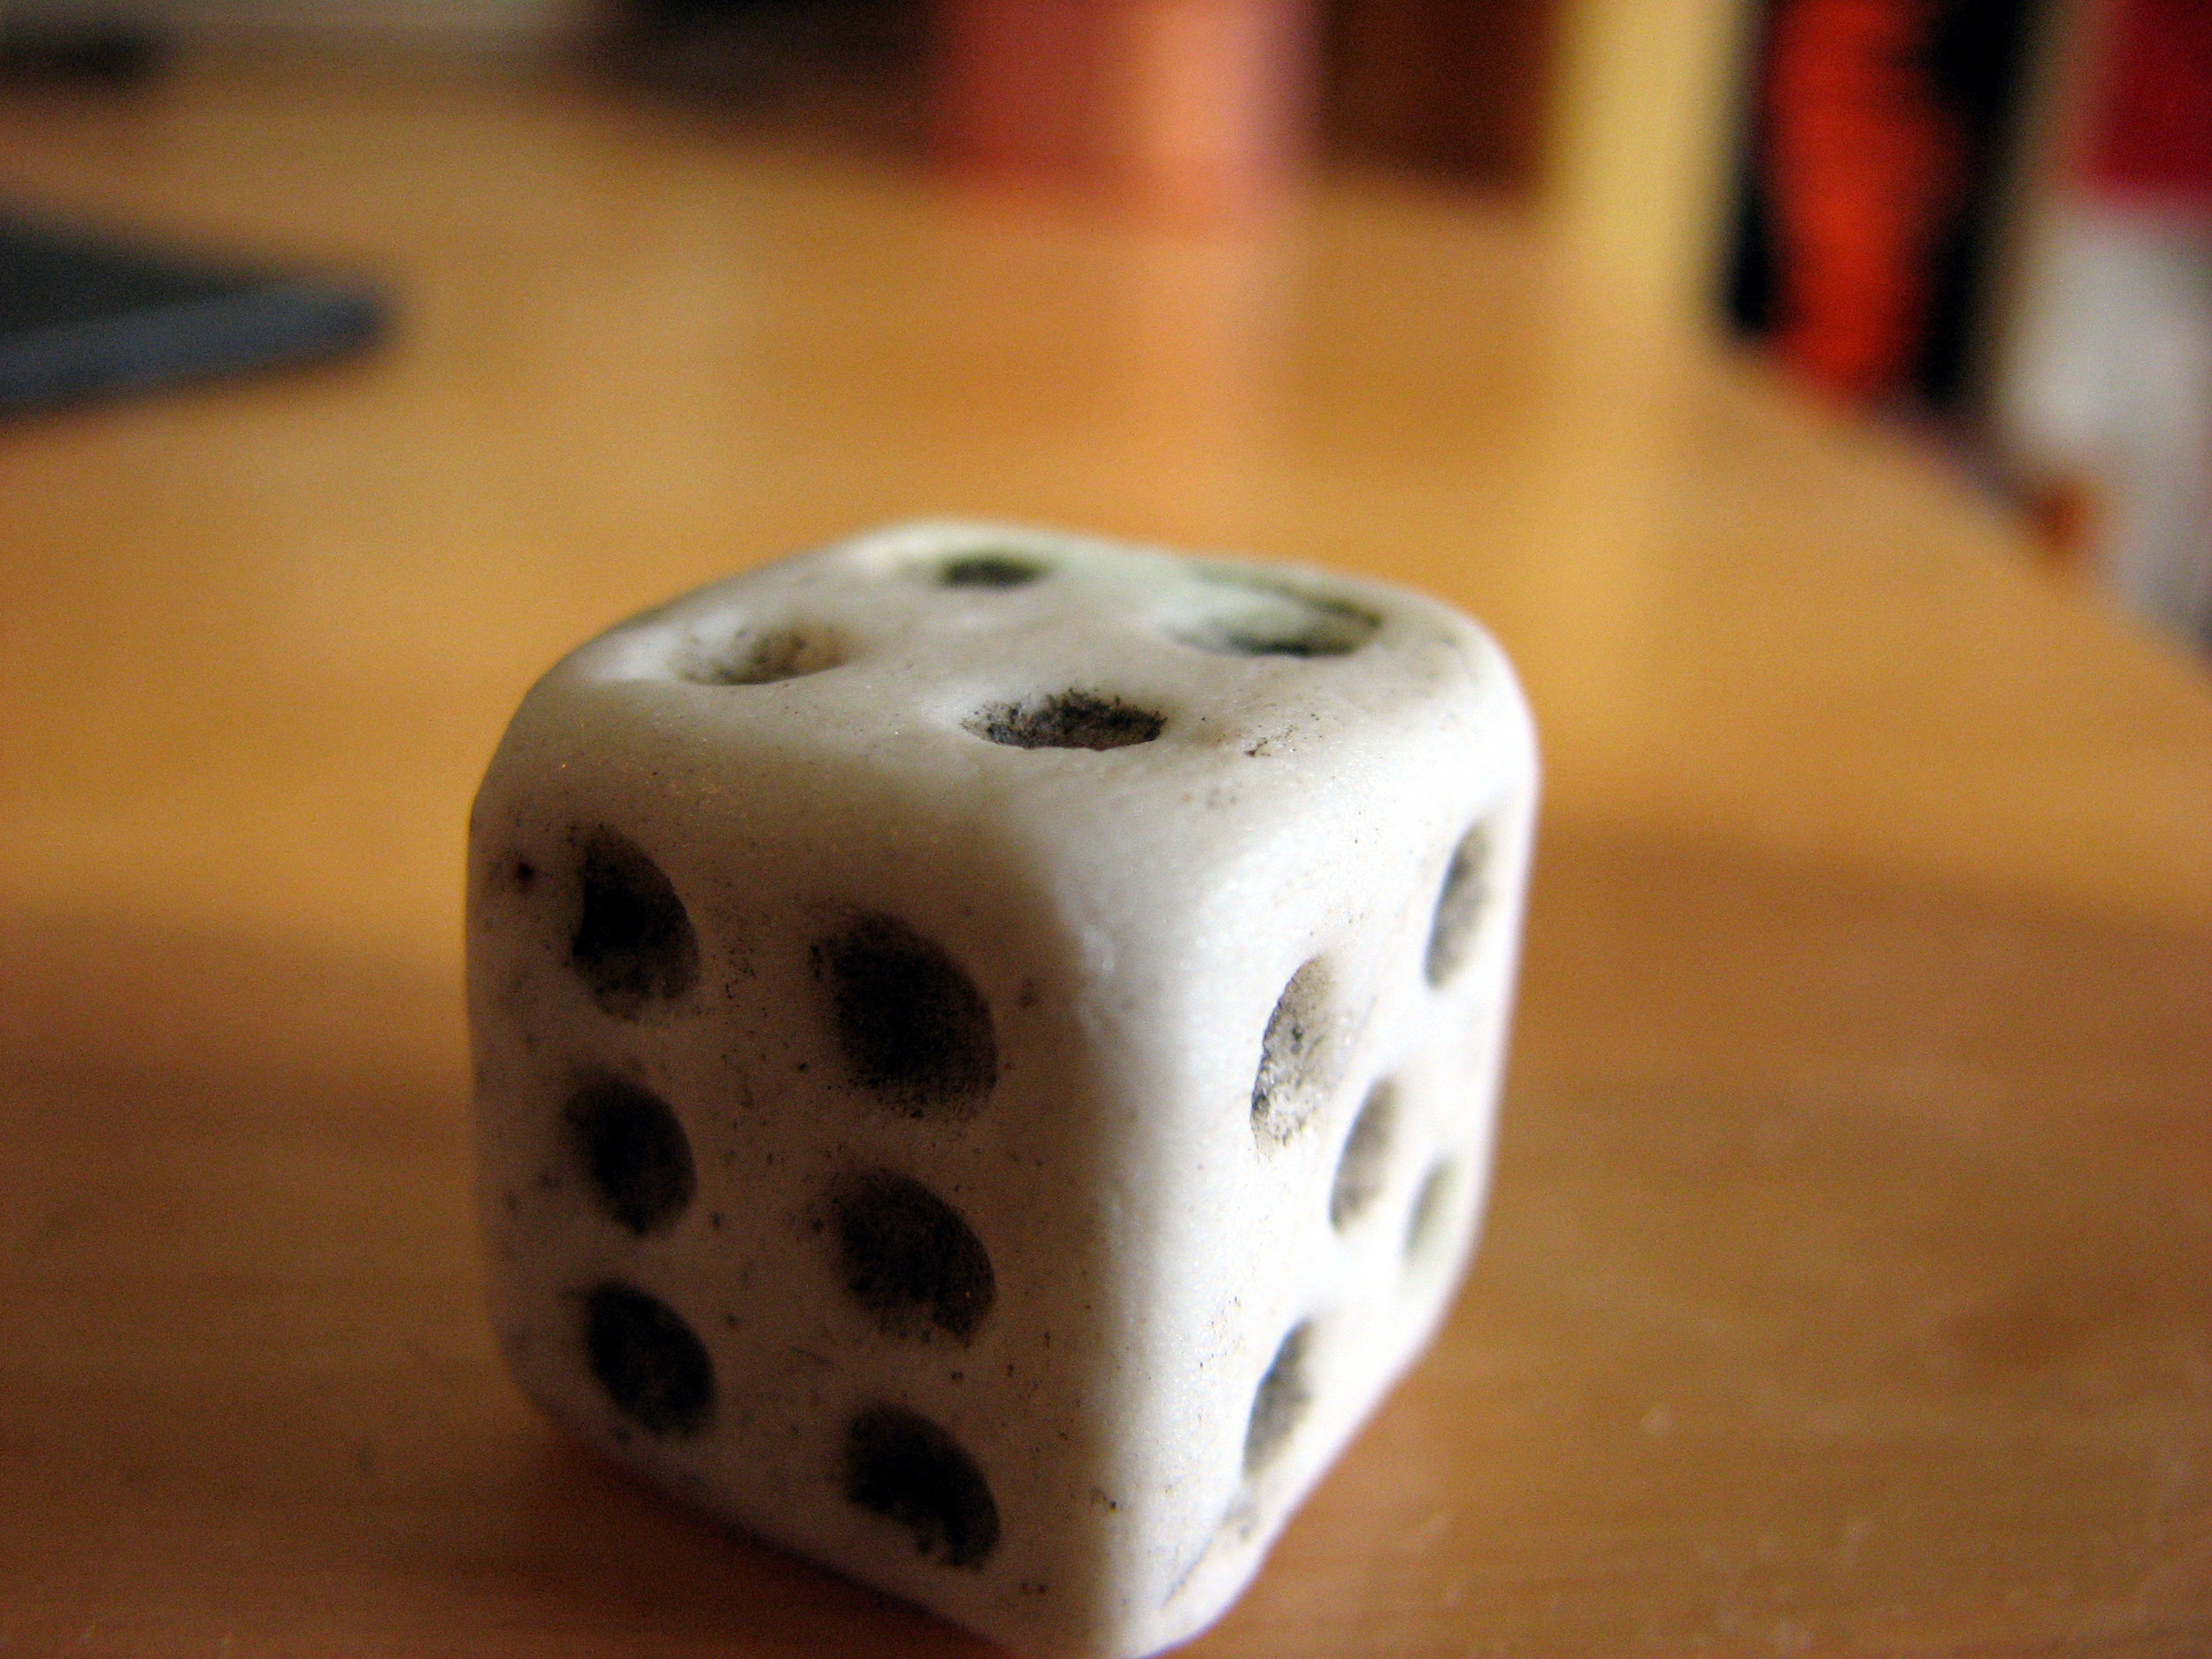 Rolling the dice on traditional media